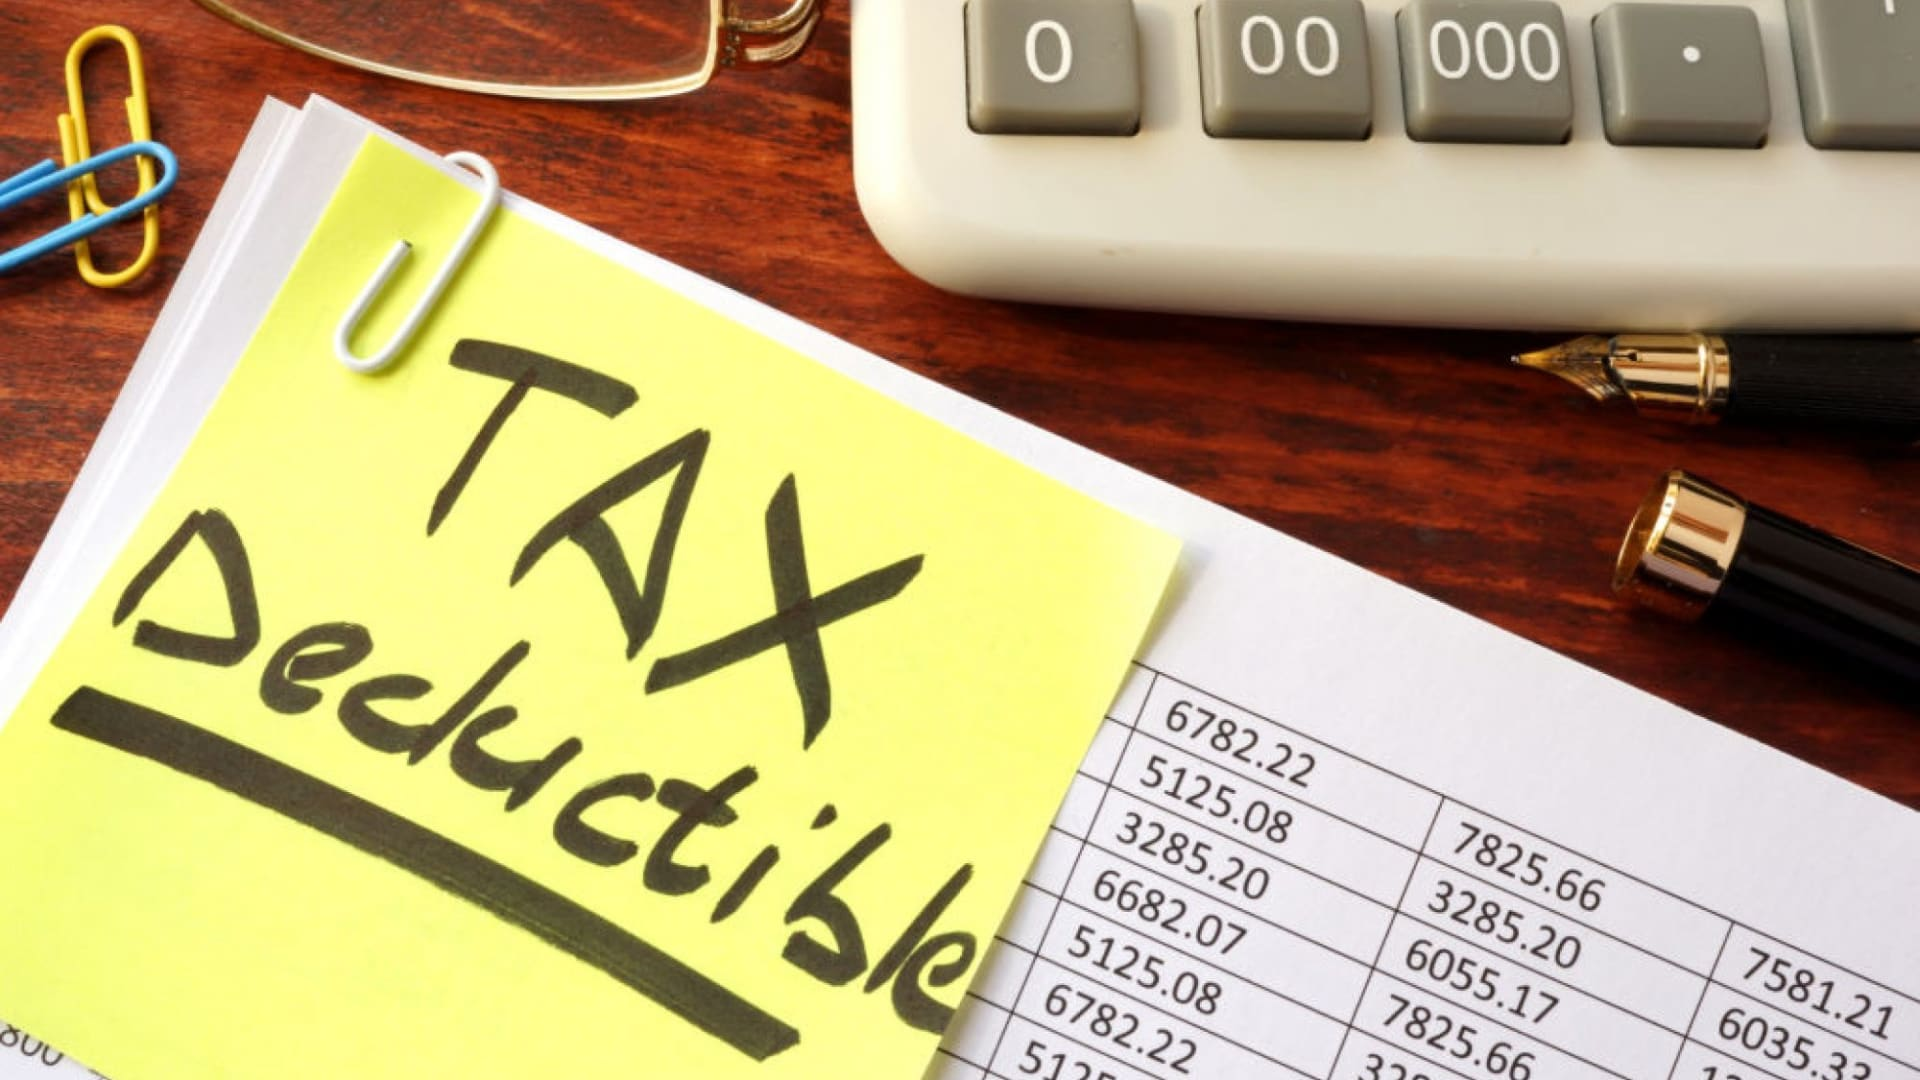 Your PPP Money Is Now Tax Free! Here's What to Do